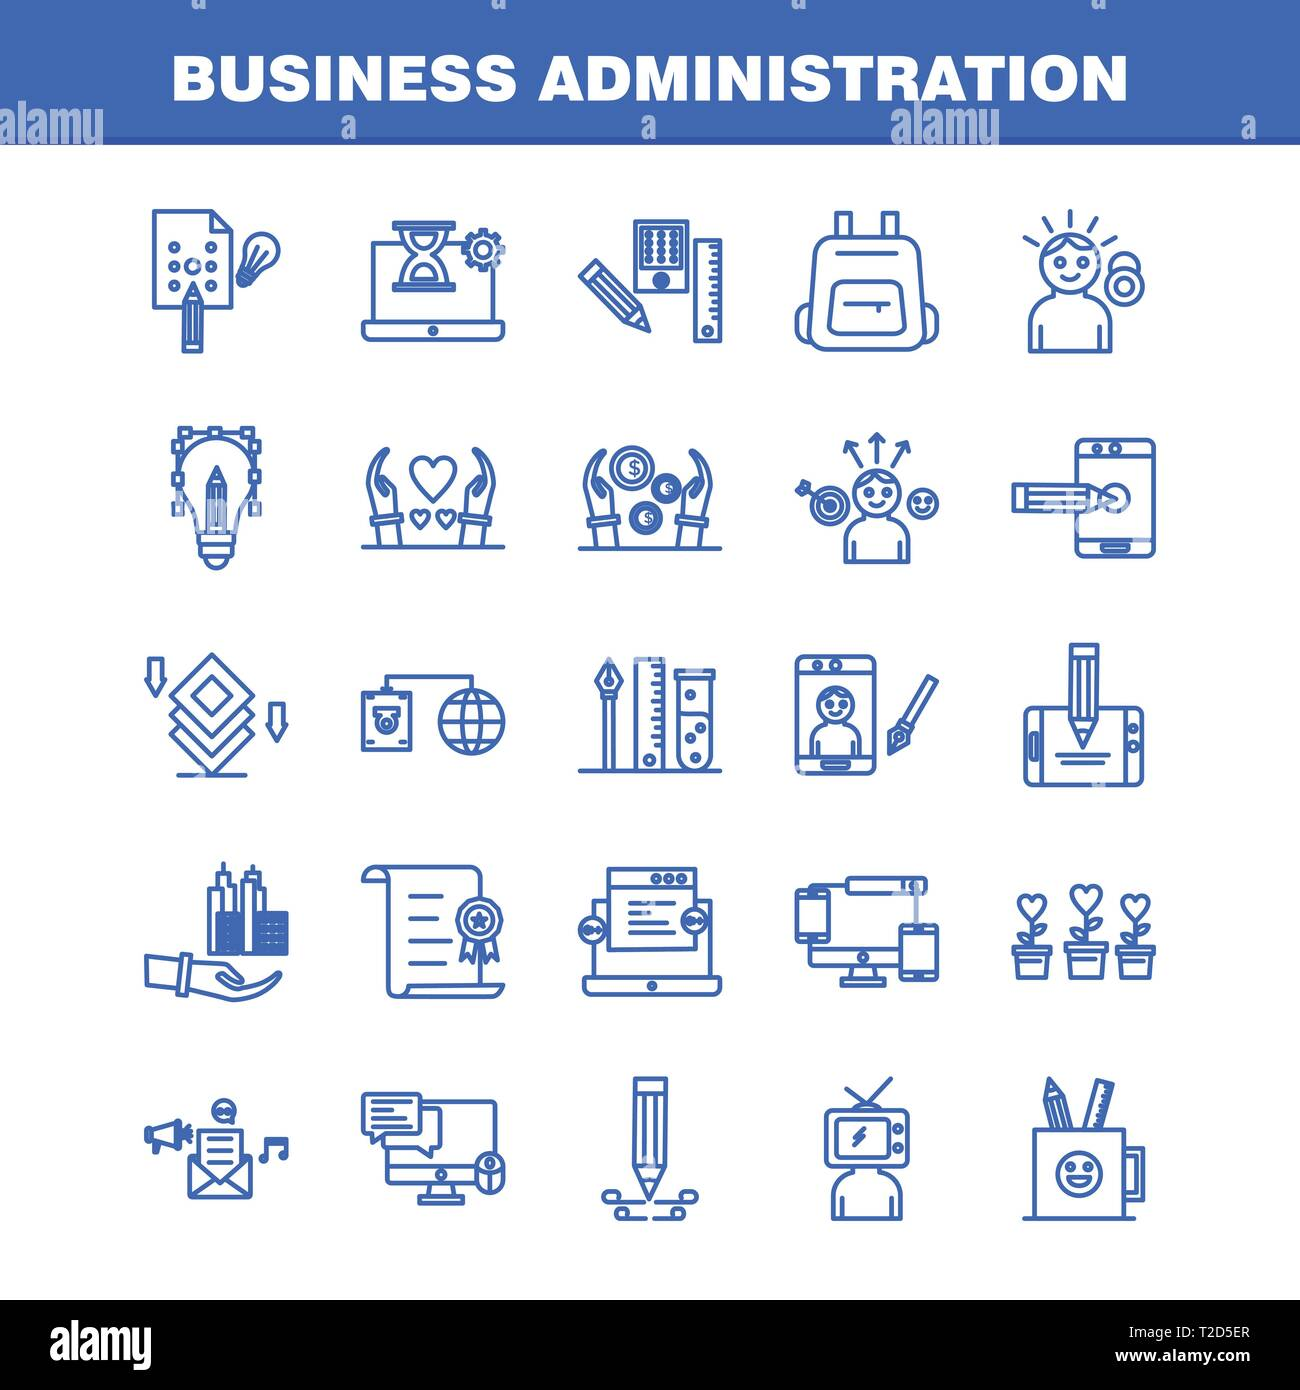 Business Administration Degree >> Business Administration Line Icons Set For Infographics